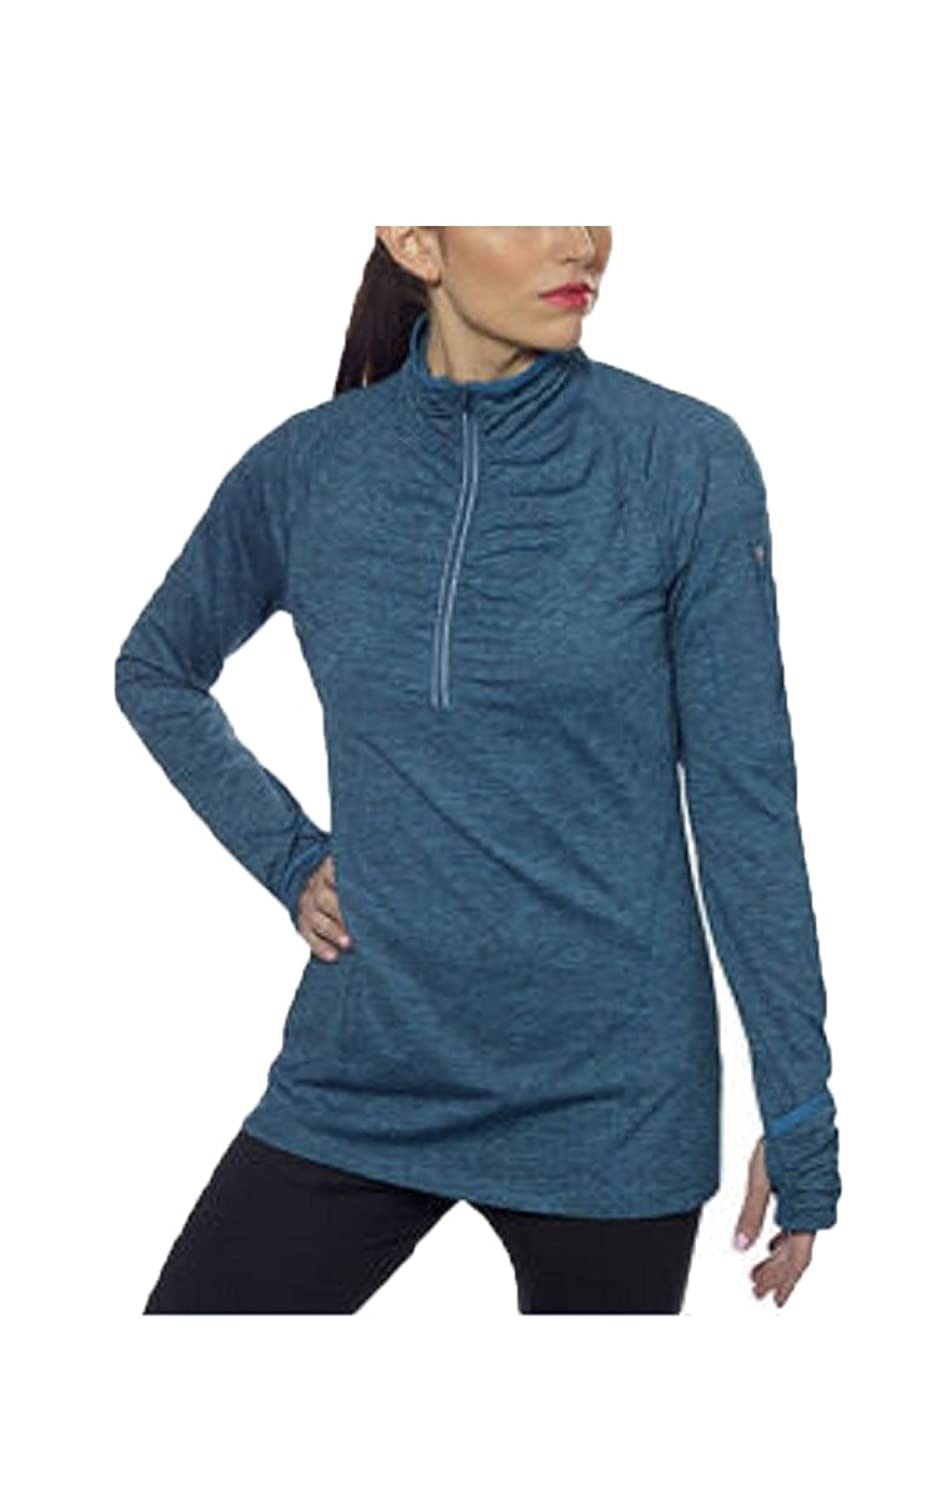 J Ann Kirkland Signature Woman's 1/4 Zip Pullover(Size : Medium,Color : Teal)